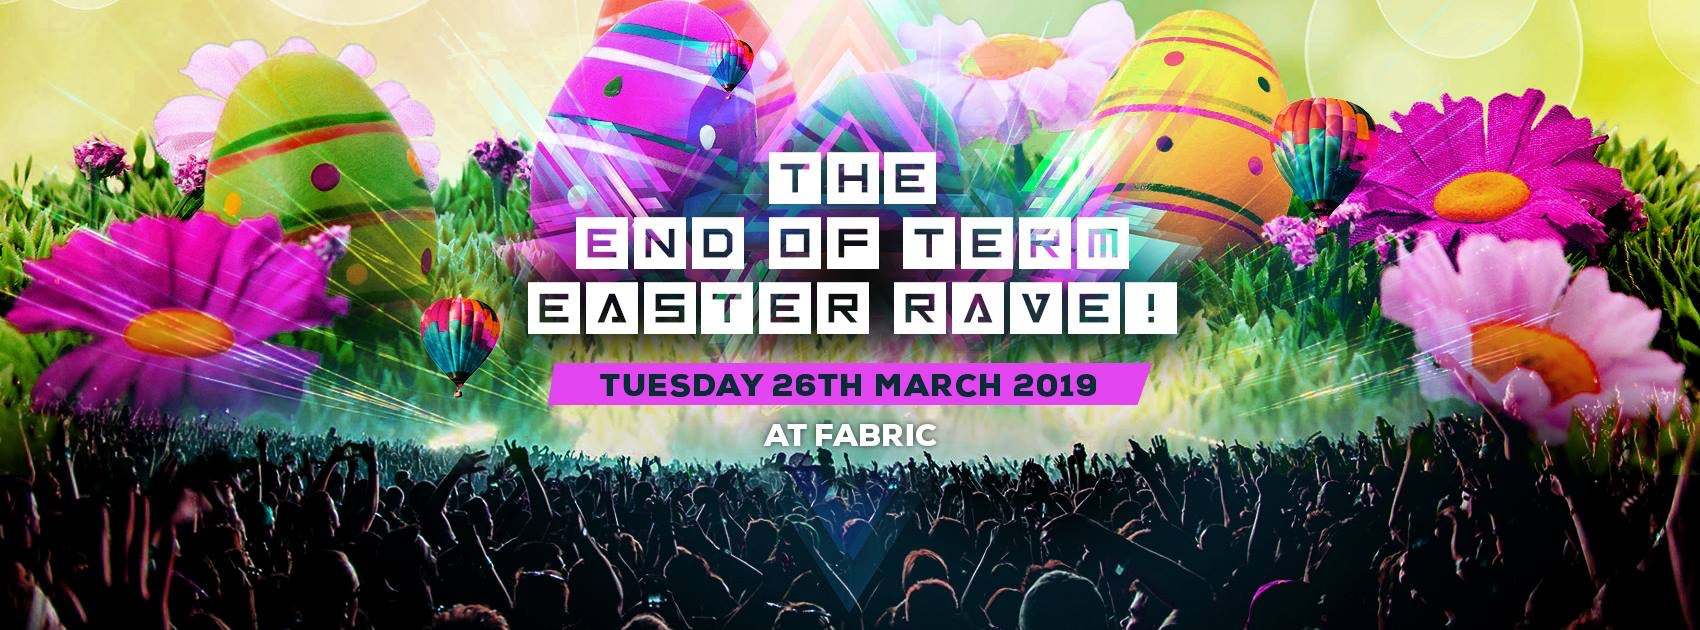 The End Of Term Easter Rave! 50 £5 Tickets Left!